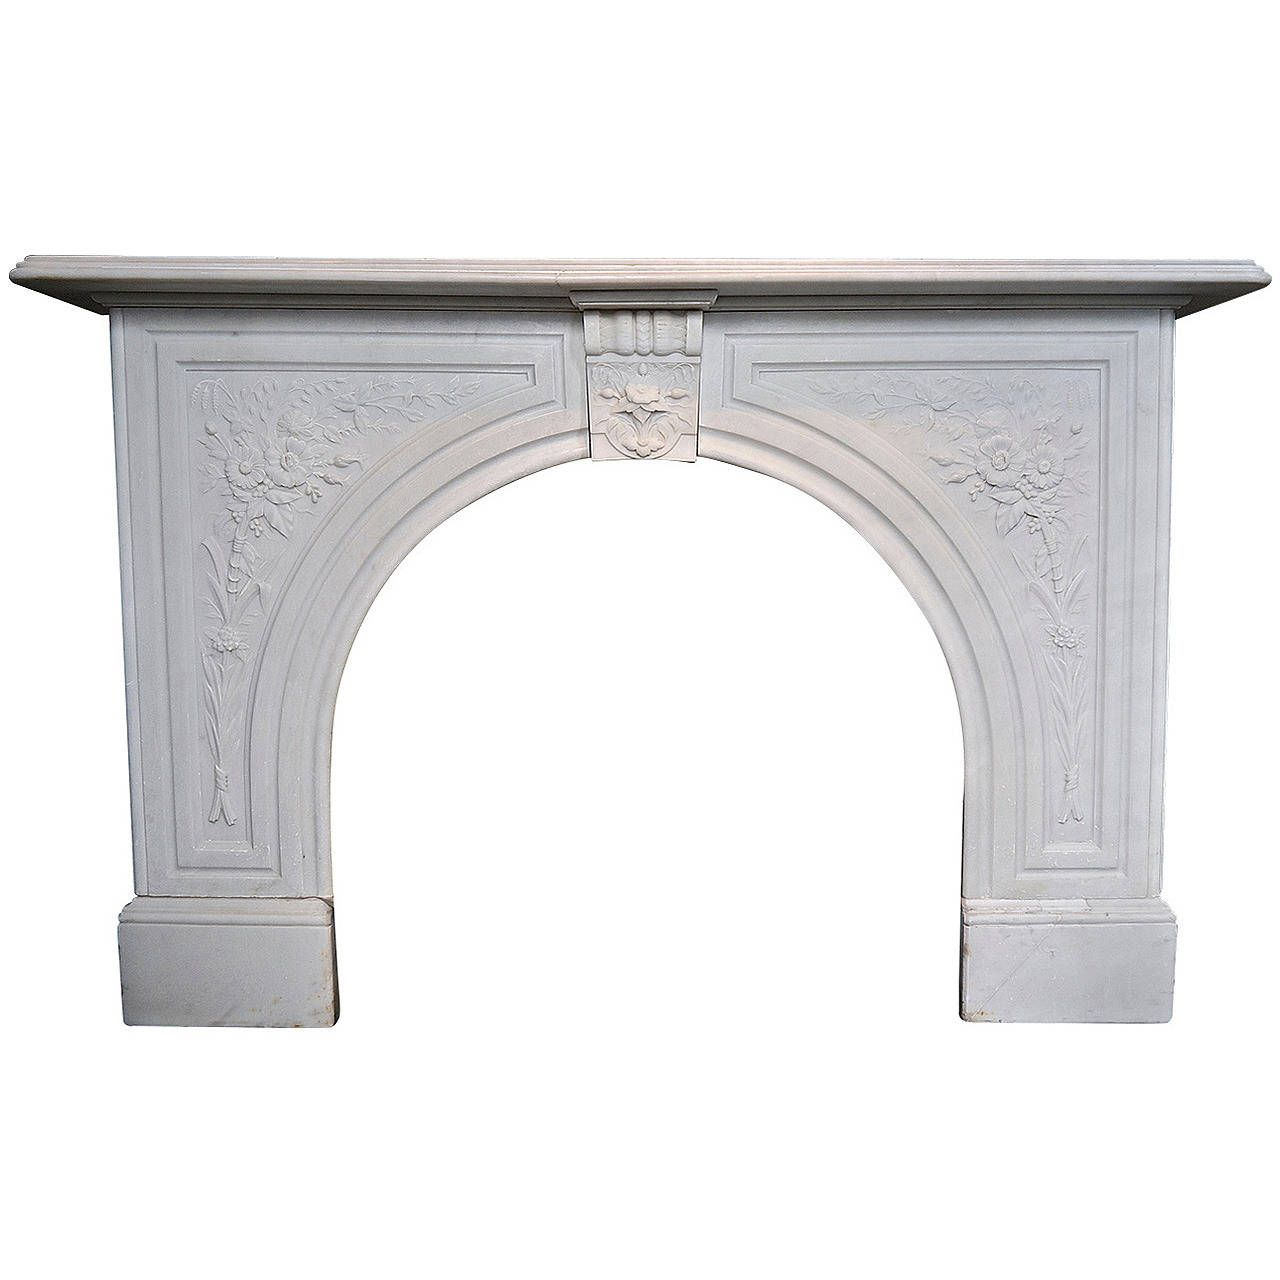 Antique Victorian Carved Arched Marble Surround | From a unique collection of antique and modern fireplaces and mantels at https://www.1stdibs.com/furniture/building-garden/fireplaces-mantels/